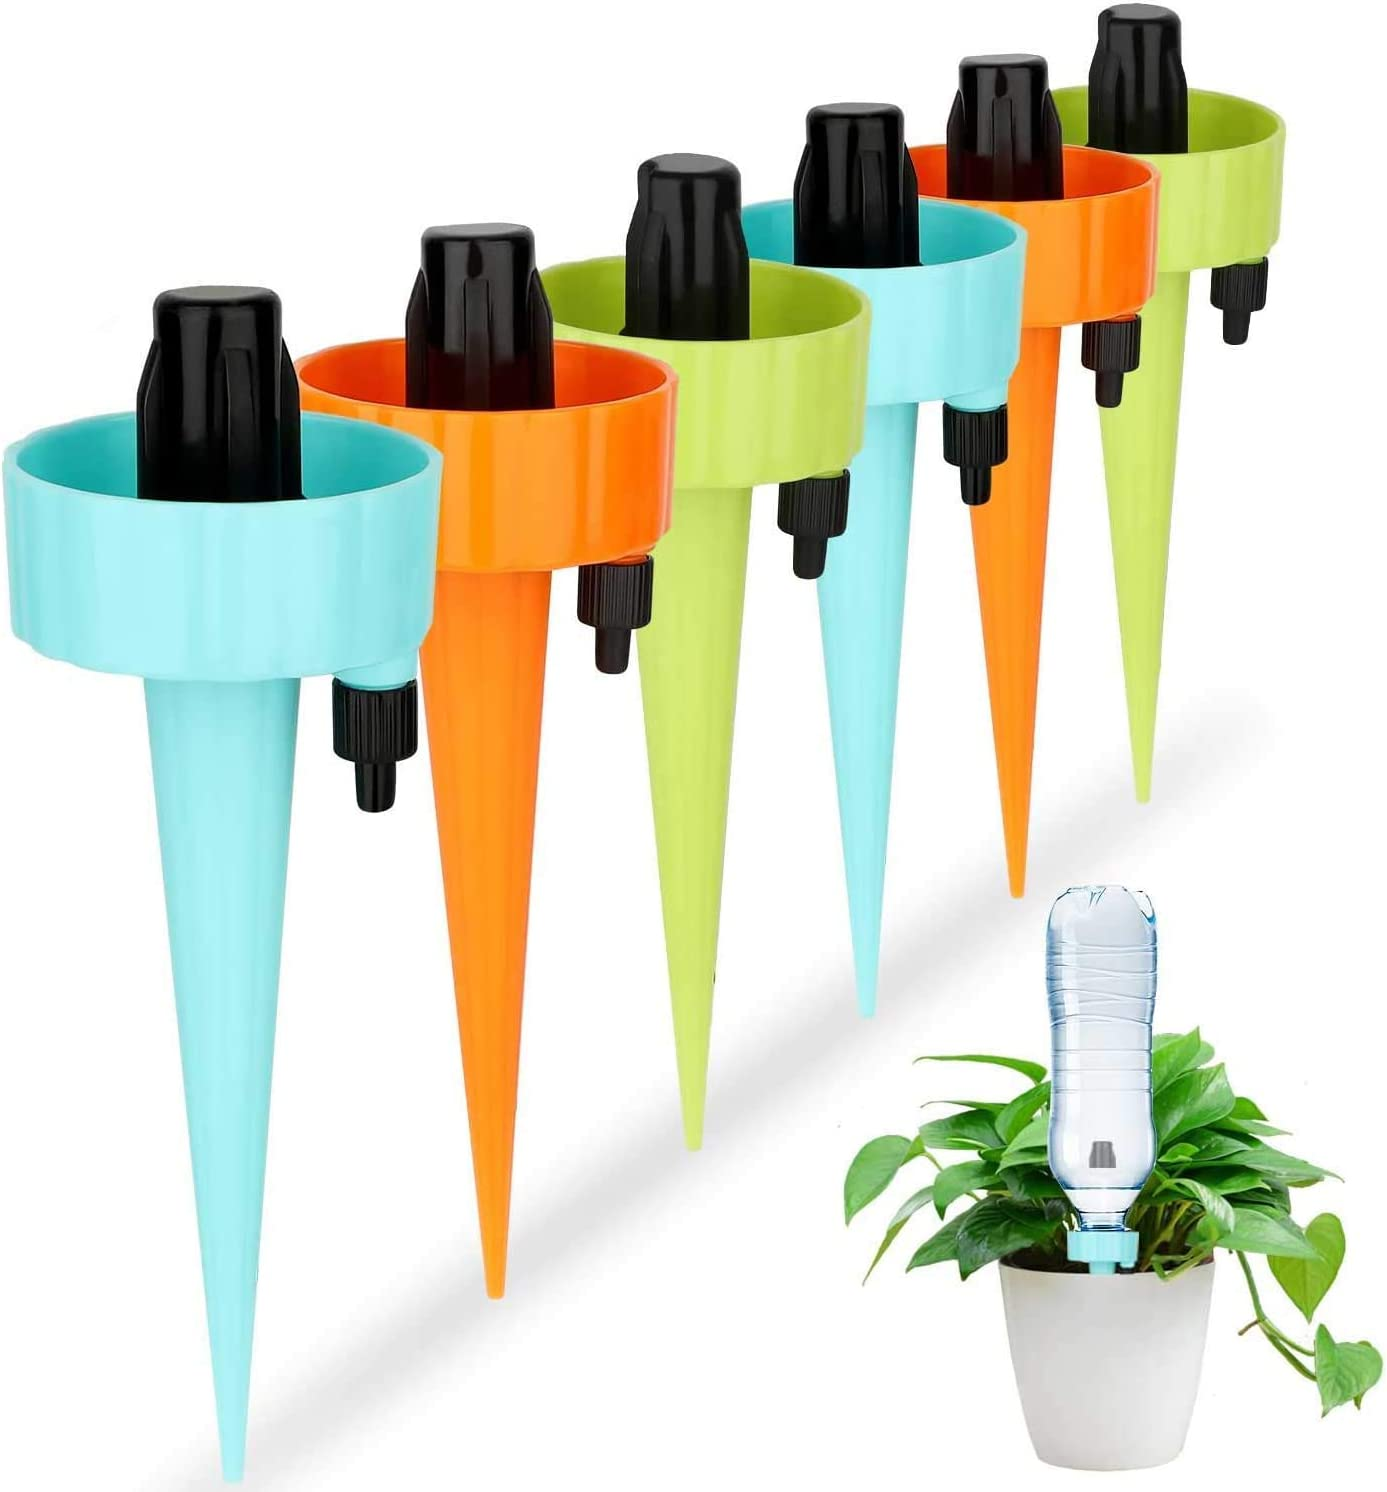 Lonfenner Automatic Watering Device with Slow Release Control Valve Switch,Plant Waterer,Self Spikes Irrigation System,Plant Watering Spikes for Indoor or Garden,6PCS/Set